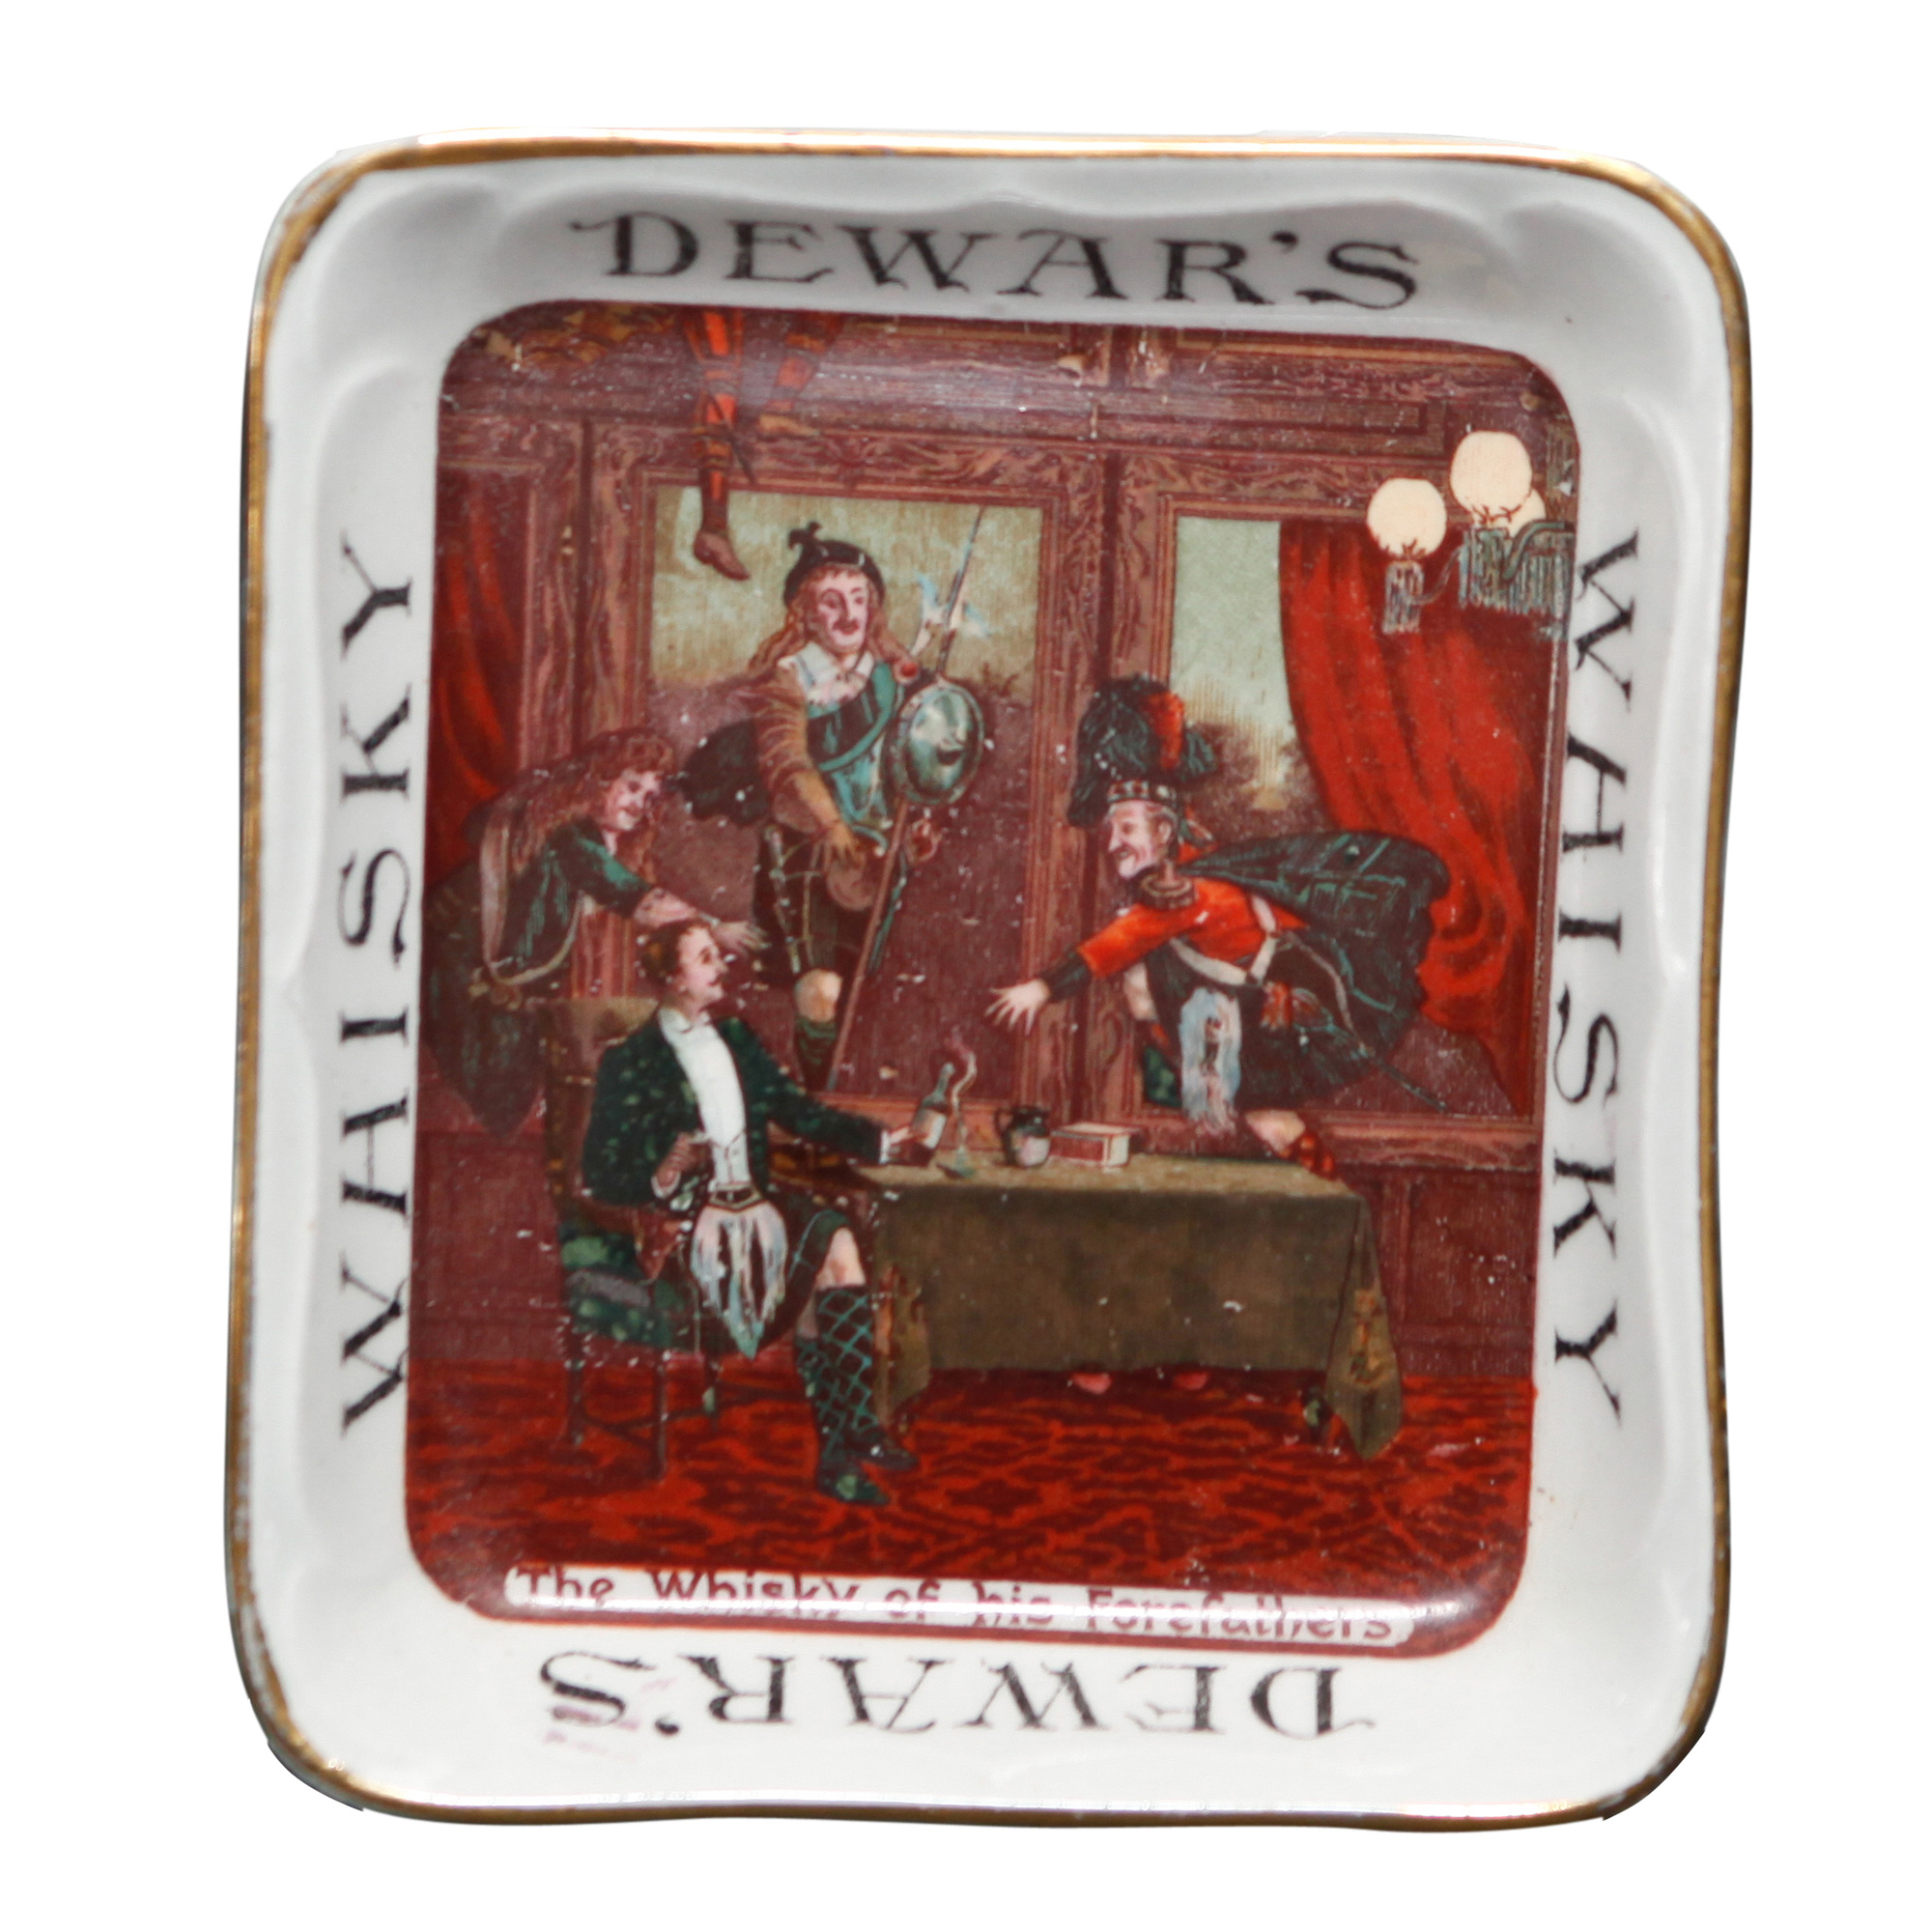 Dewar's Whisky Ashtray